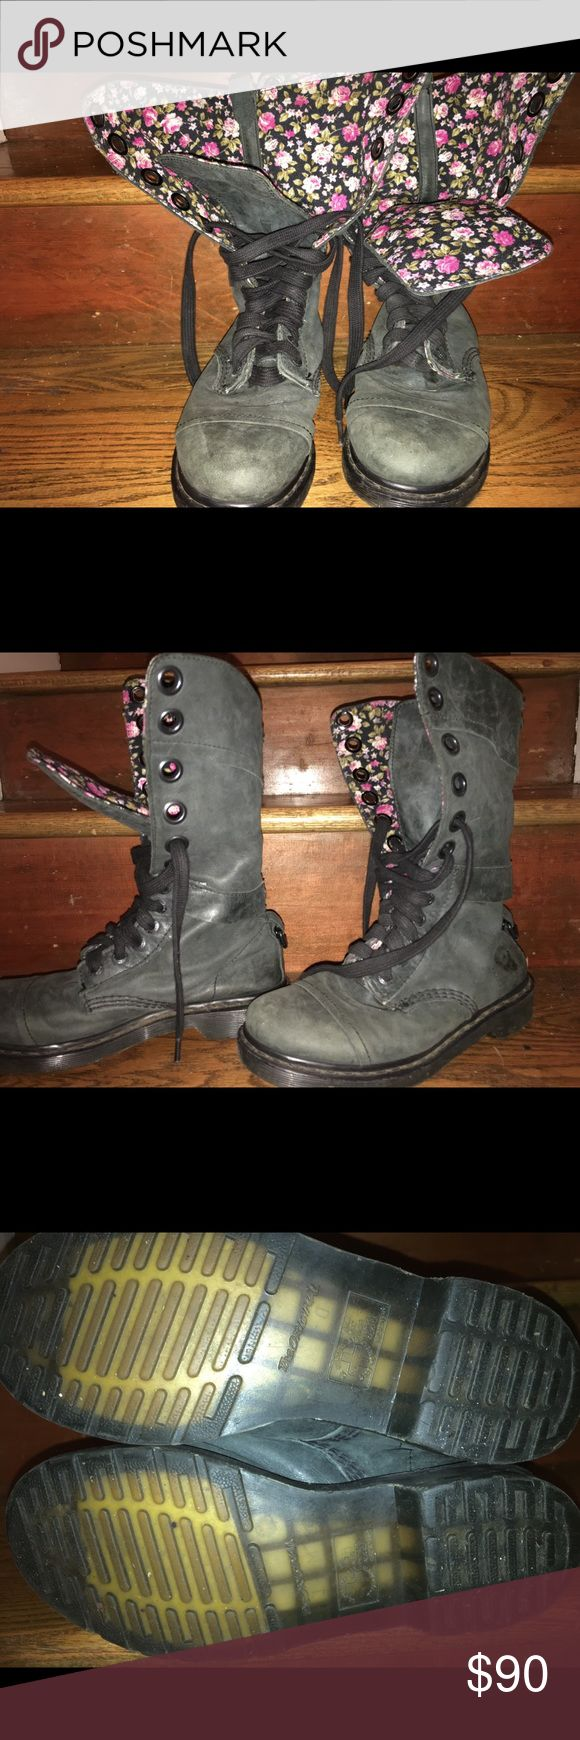 Dr. Martin boots with floral lining Dusty black Dr. Martin with vibrant floral lining inside. Can be worn all laced up, hiding the floral design, or folded over to show it off.  These shoes have only been worn a few times and are in excellent condition! Dr. Martens Shoes Combat & Moto Boots